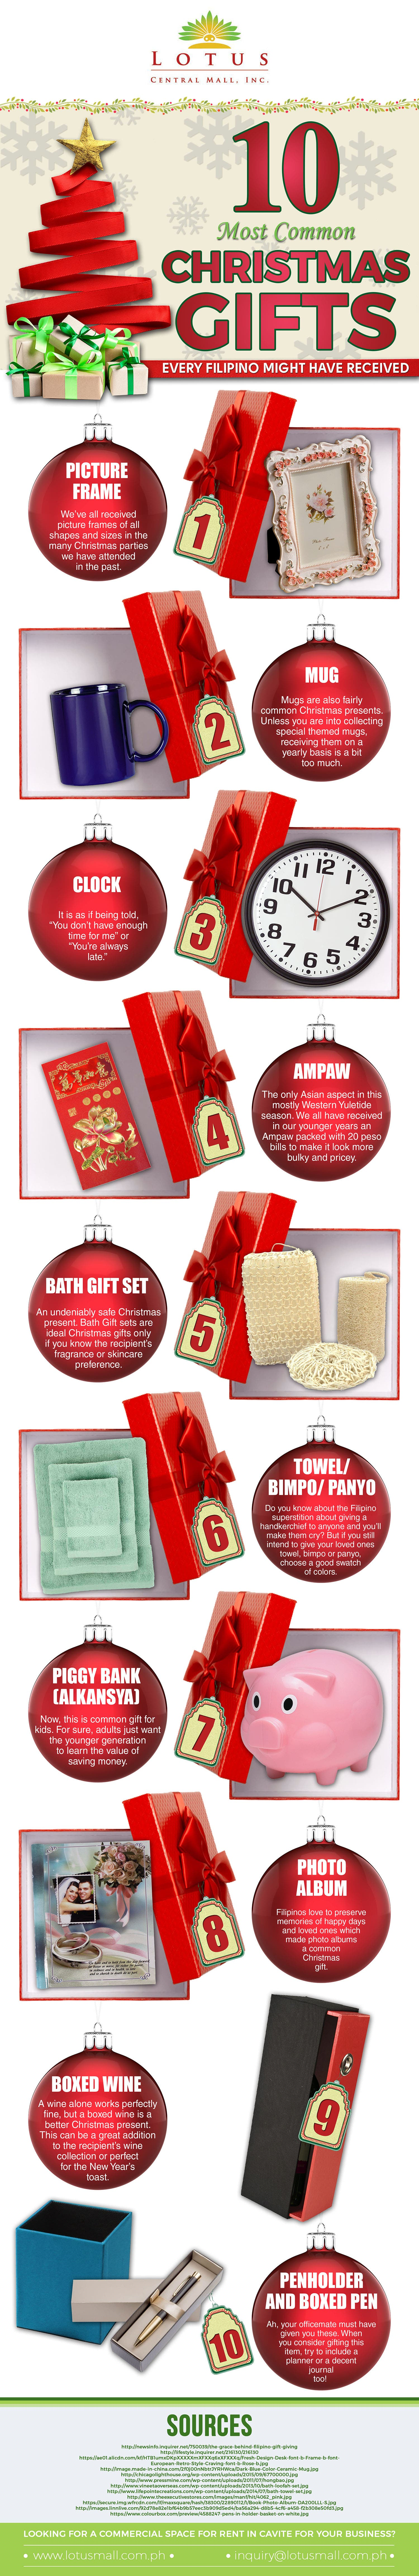 most-common-xmas-gifts